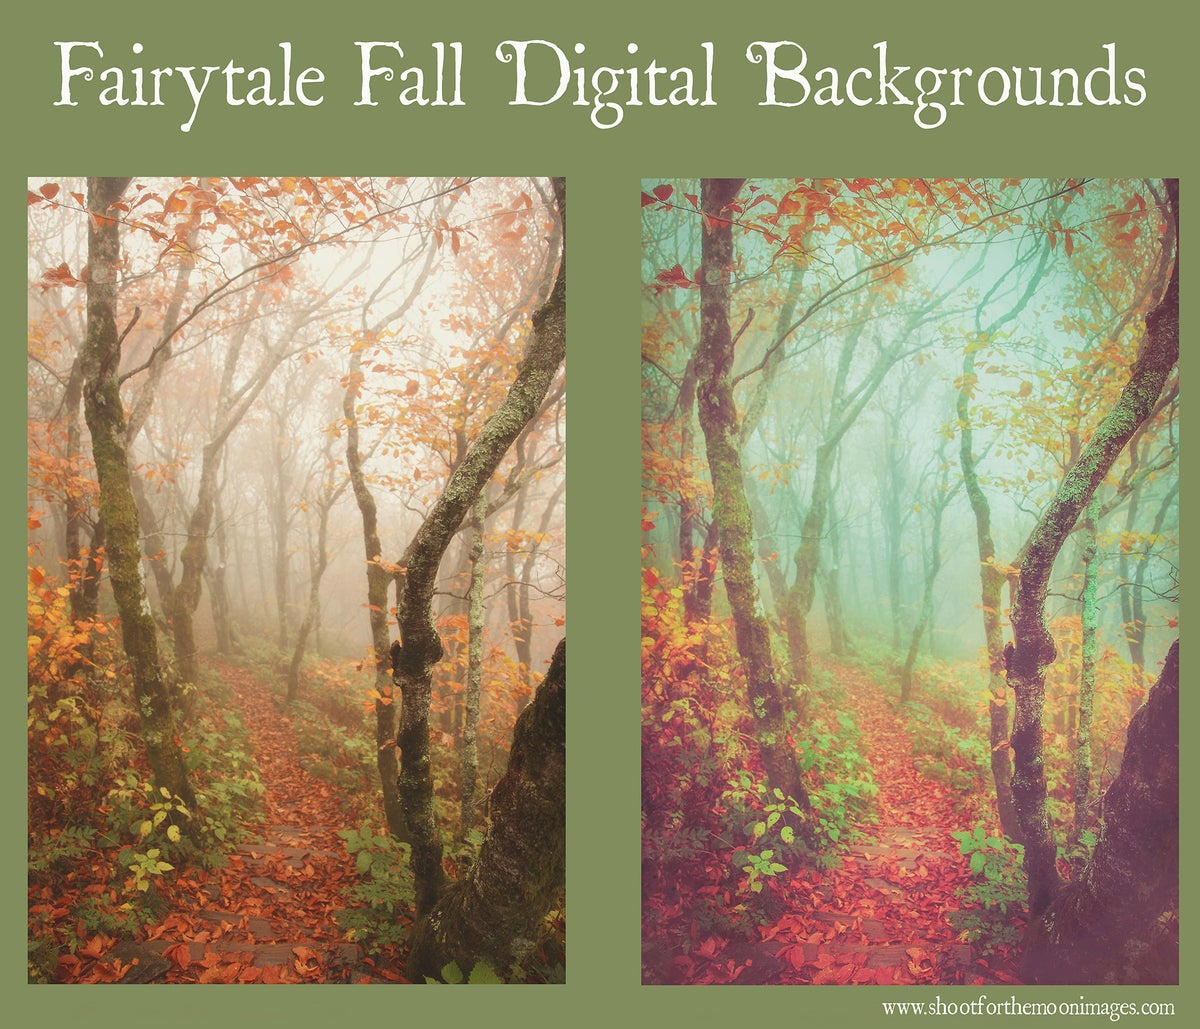 Image of Fairytale Fall Digital Backgrounds